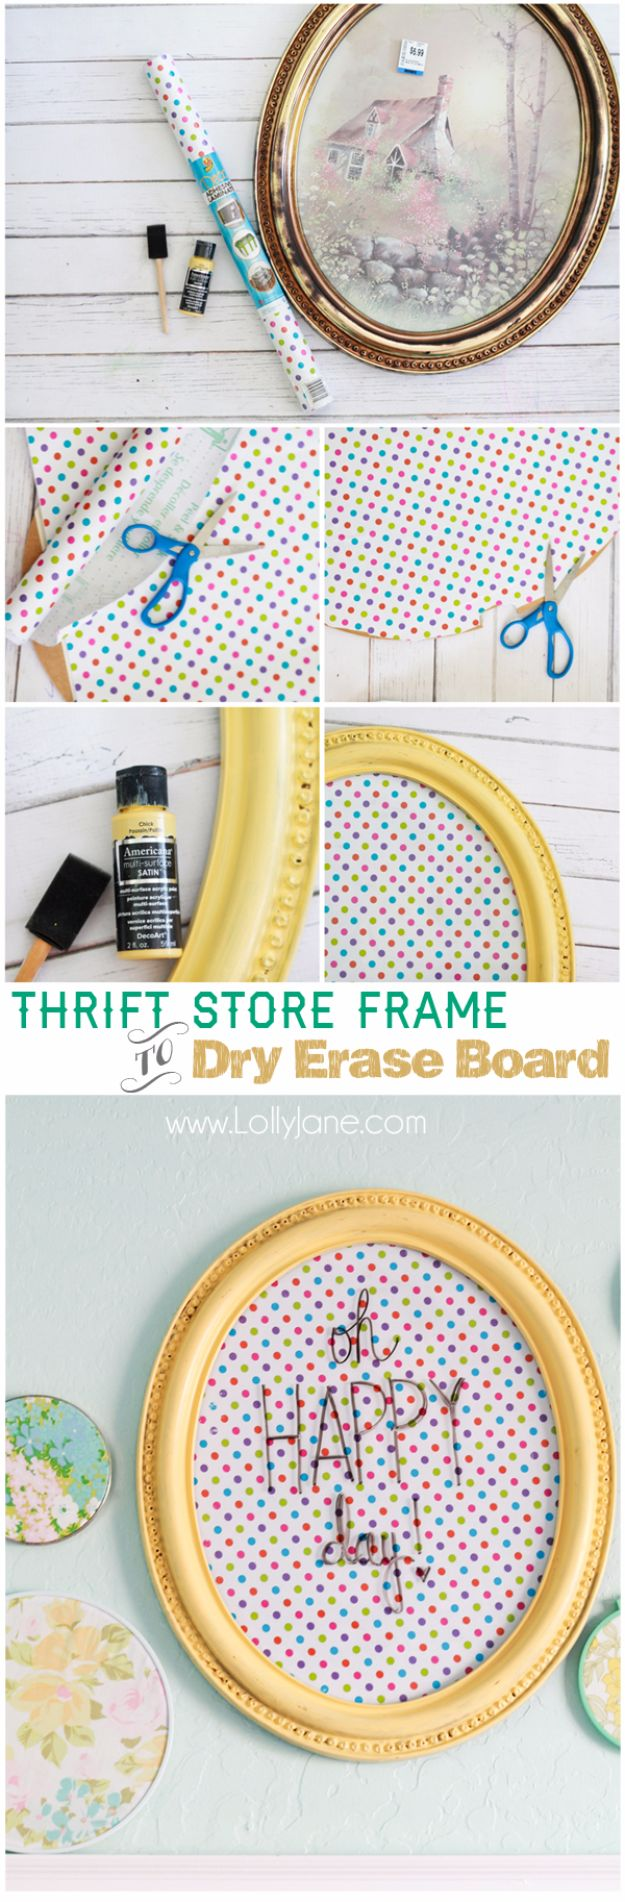 Cheap DIY Gift Ideas - Framed Polka Dot Dry Erase Board - List of Handmade Gifts on A Budget and Inexpensive Christmas Presents - Do It Yourself Gift Idea for Family and Friends, Mom and Dad, For Guys and Women, Boyfriend, Girlfriend, BFF, Kids and Teens - Dollar Store and Dollar Tree Crafts, Home Decor, Room Accessories and Fun Things to Make At Home http://diyjoy.com/cheap-diy-gift-ideas